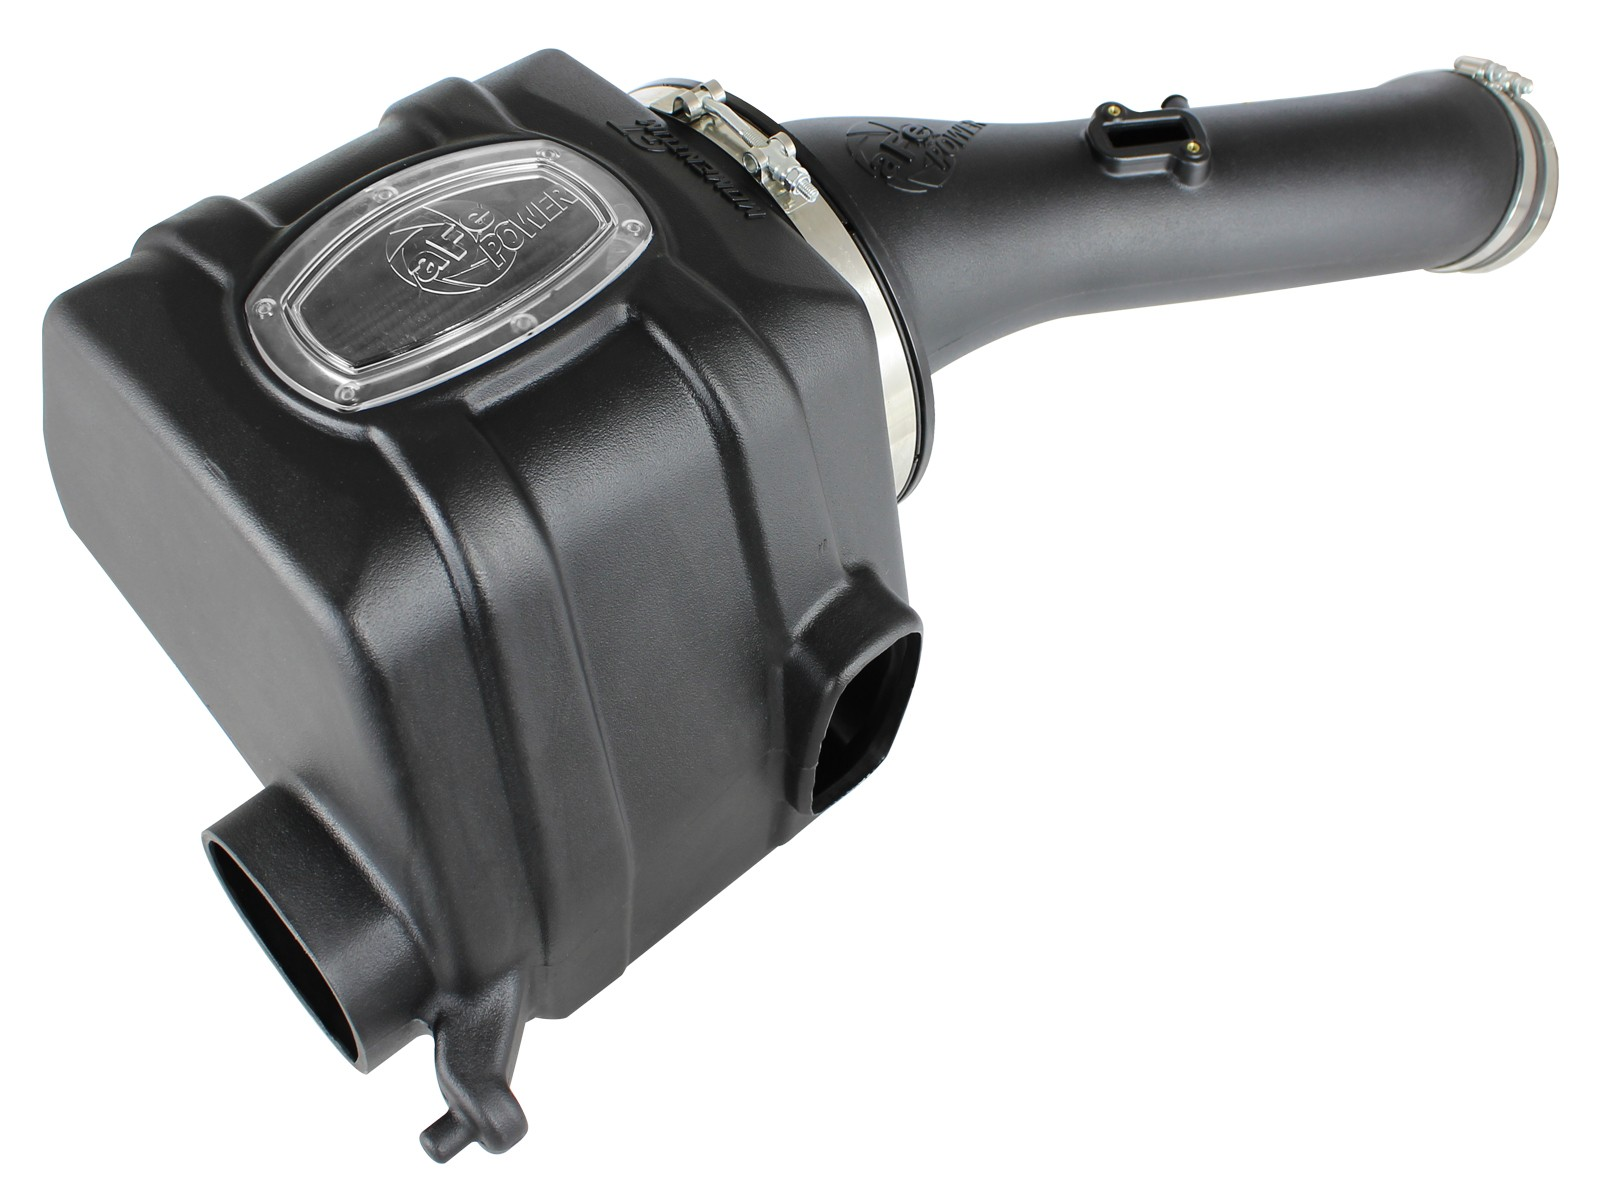 aFe POWER 51-76003 Momentum GT Pro DRY S Cold Air Intake System